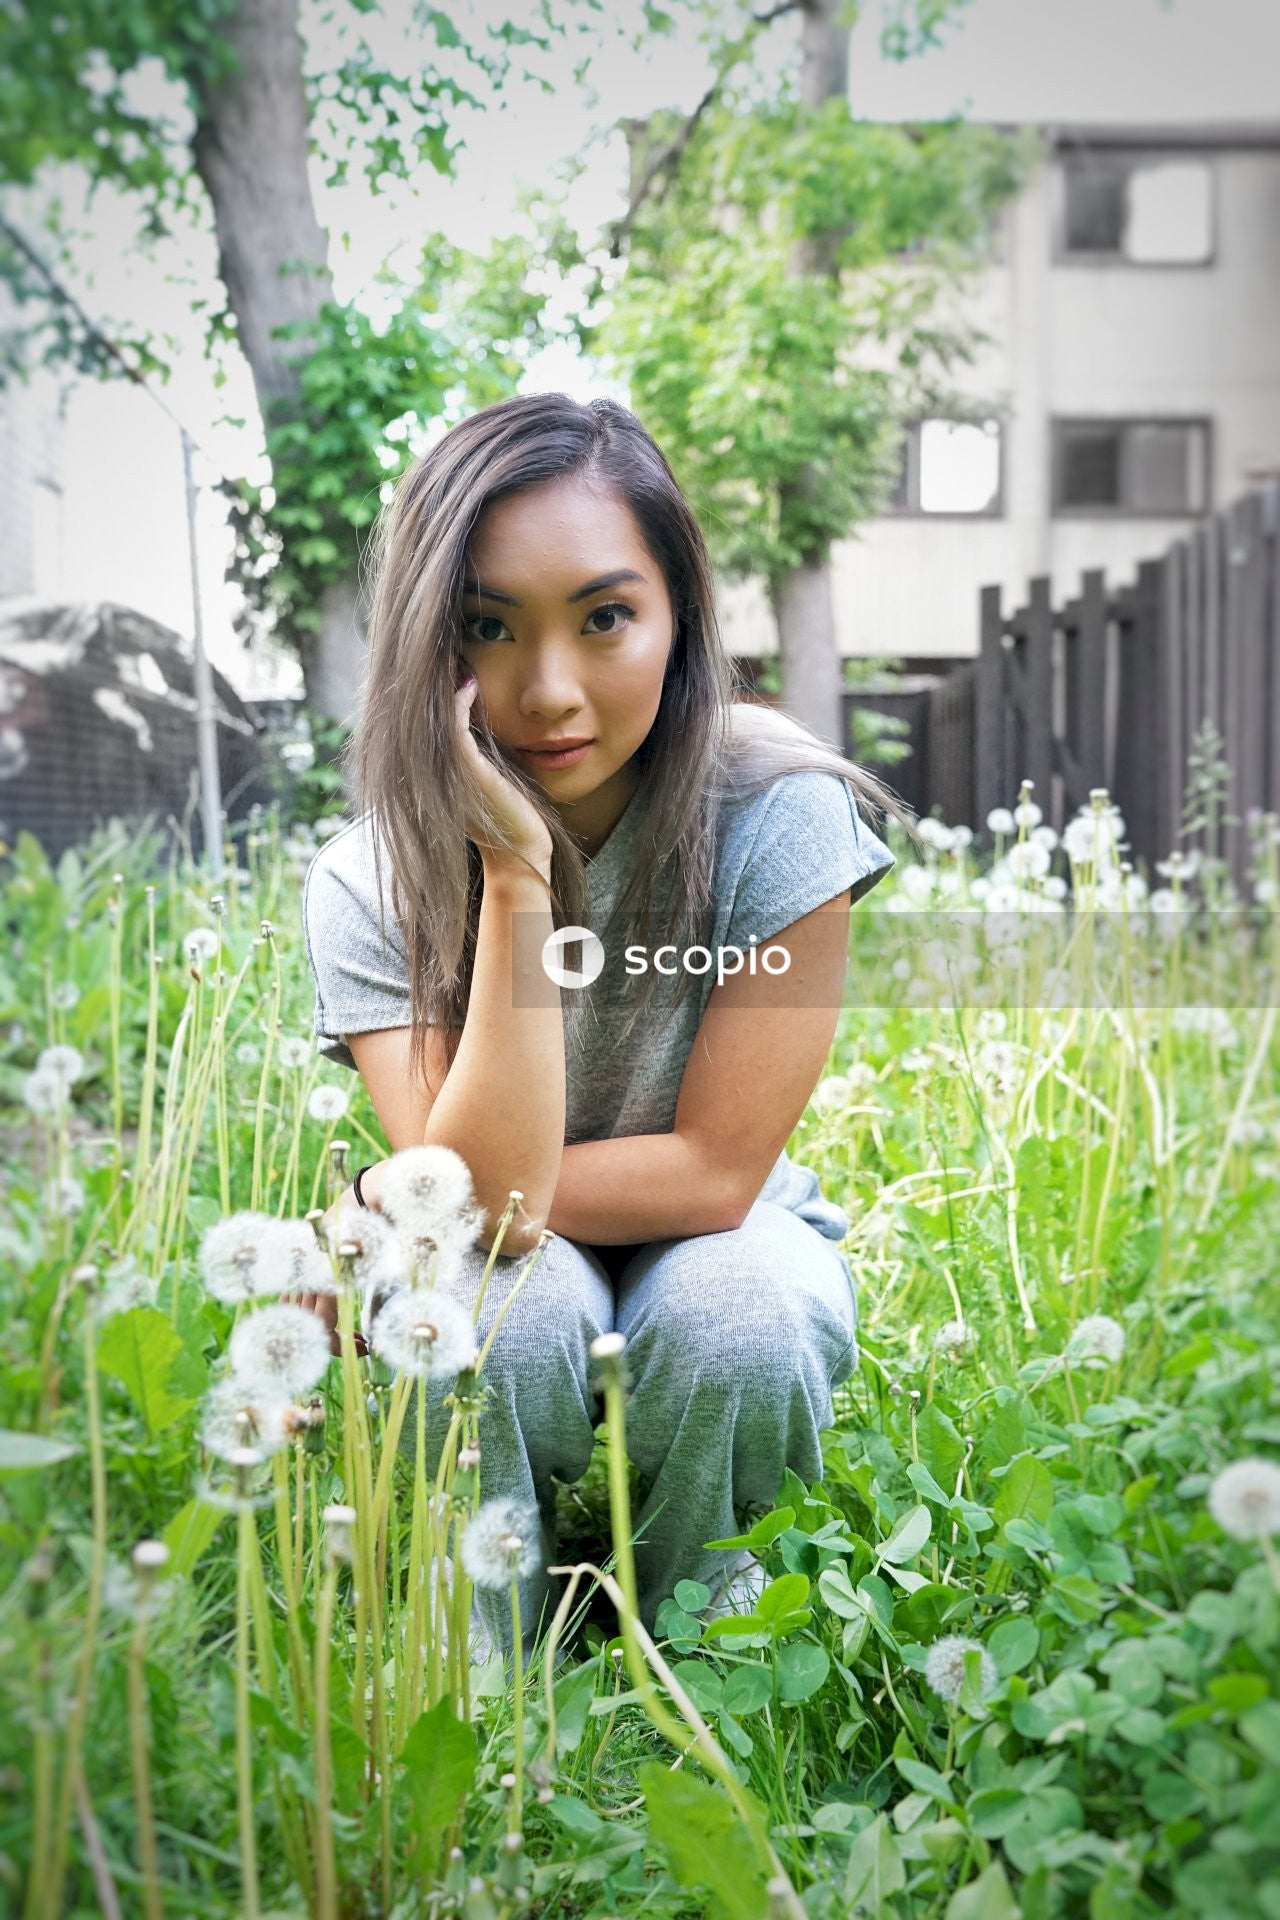 Woman in gray t-shirt sitting in front of white flowers